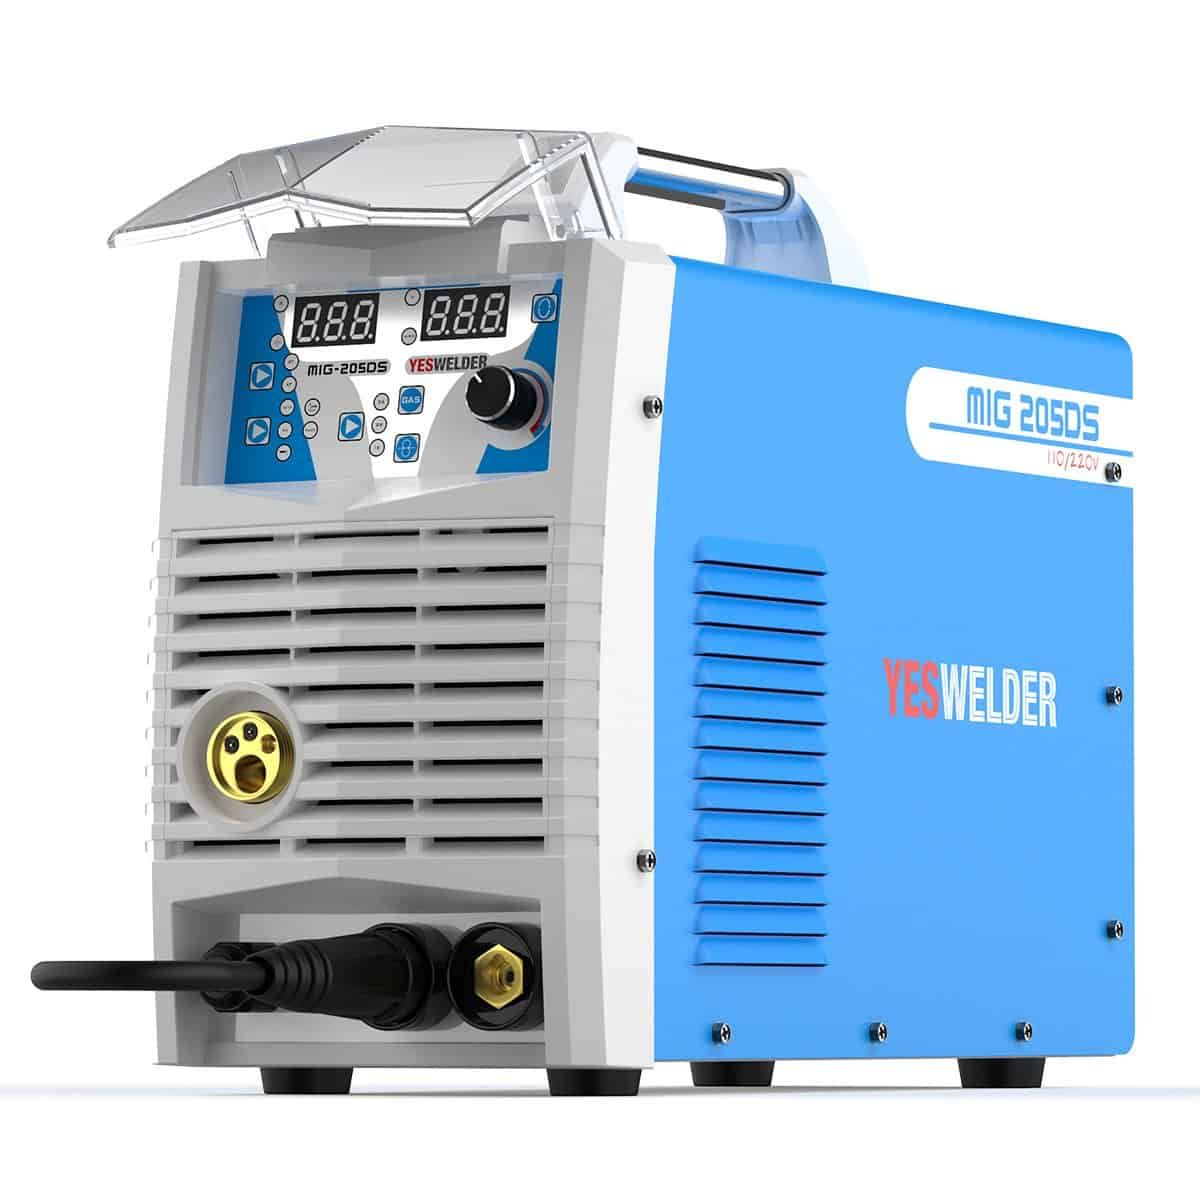 Best Mig Welders For 2020 And Reviews For 110v 220v In 2020 Mig Welder Best Mig Welder Welding Machine